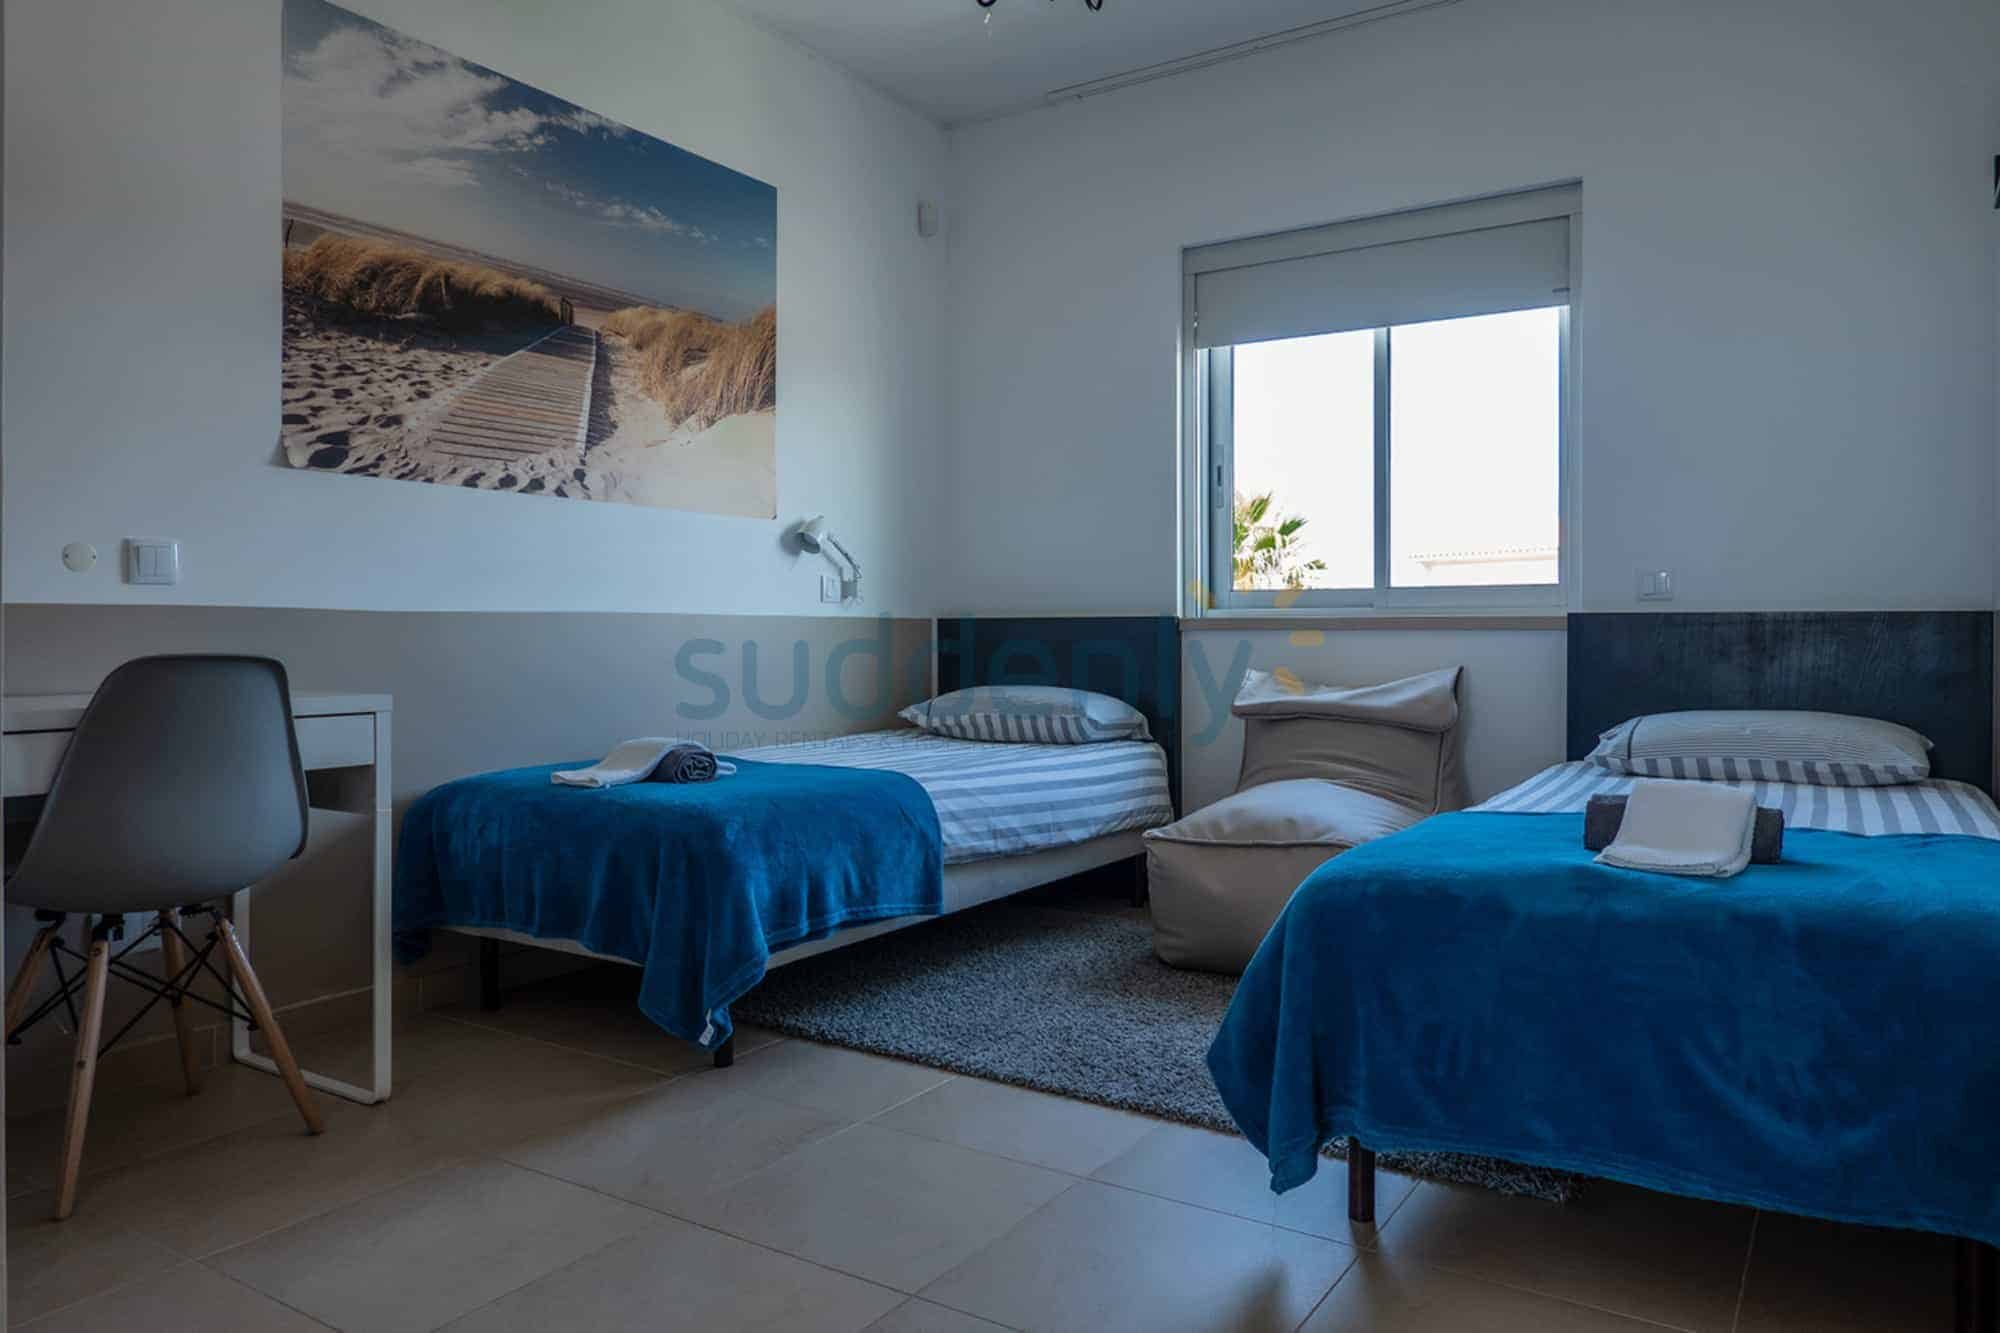 Holiday Rentals in Praia D'El Rey 94